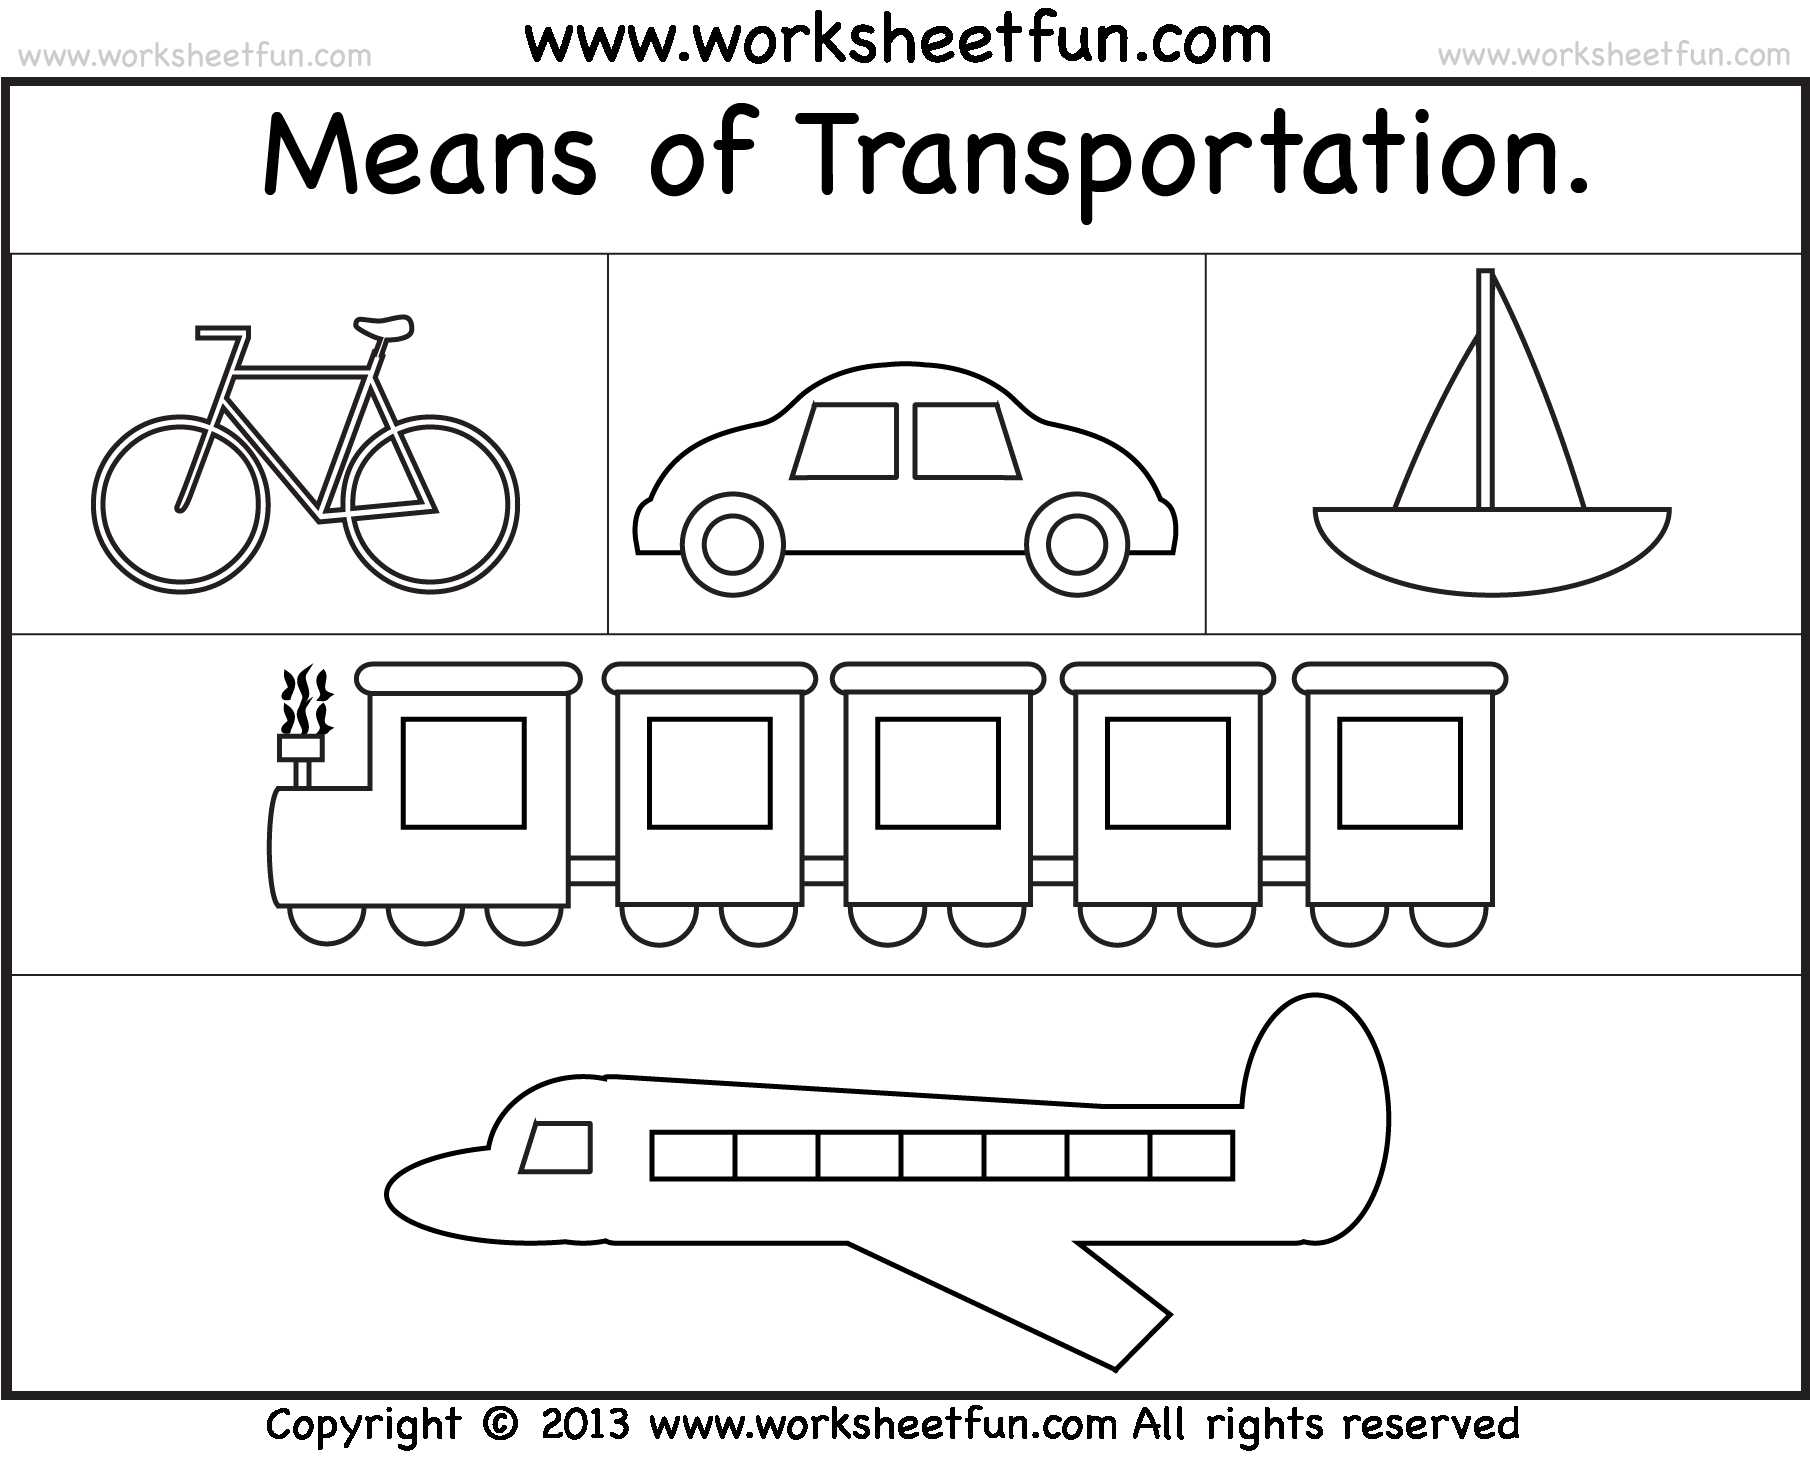 Cut and Paste Worksheets for Kindergarten together with Transportation Worksheets for Kindergarten the Best Worksheets Image